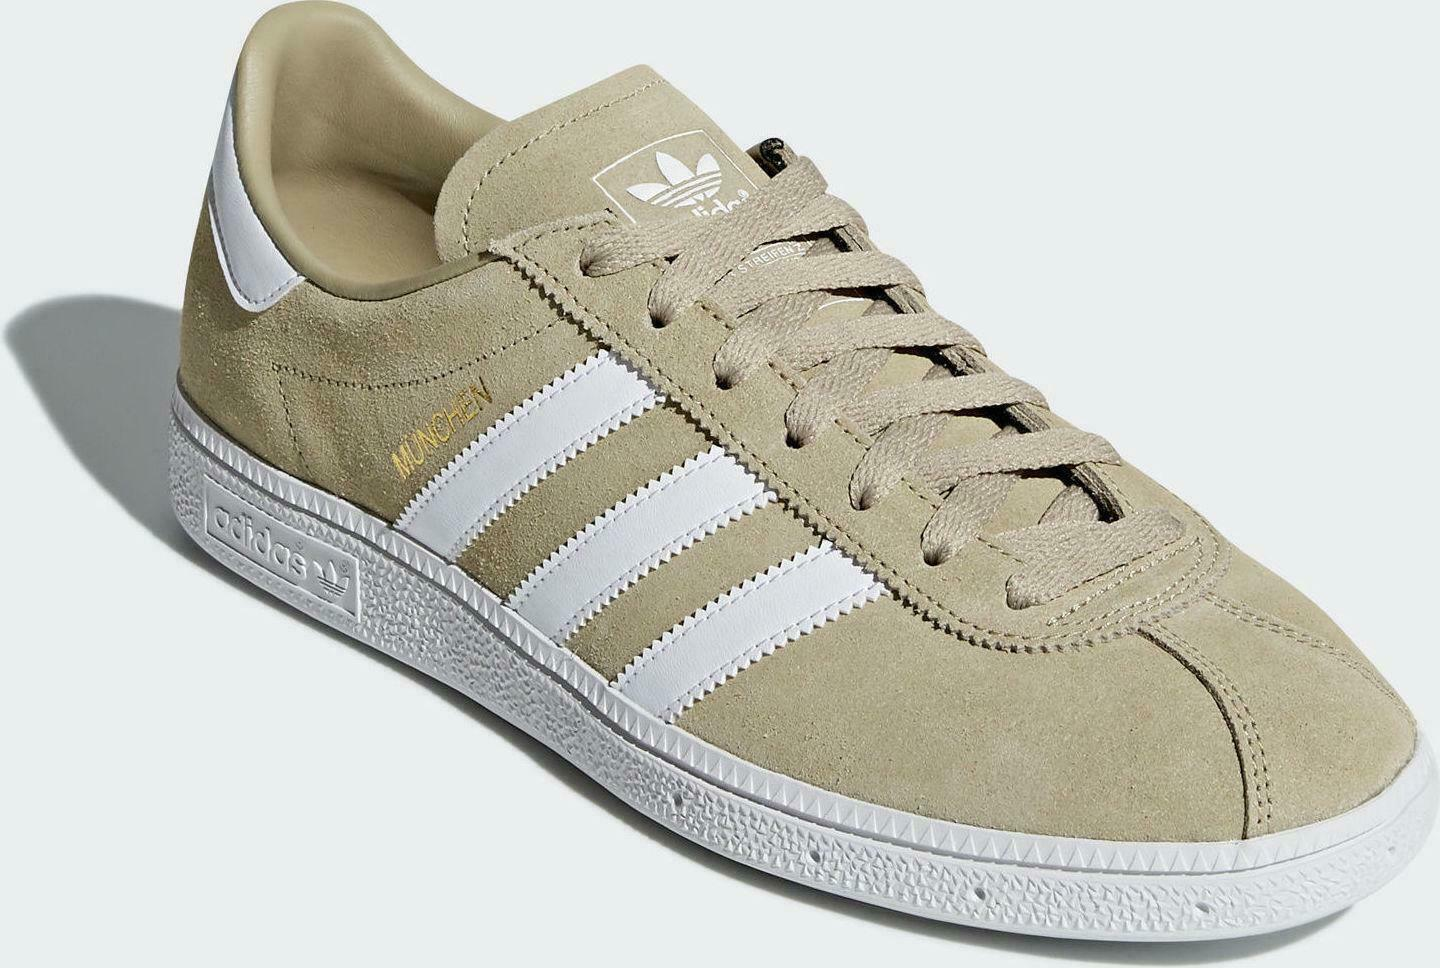 Adidas Originals Munchen Trainers - Adults + Junior Sizes Available